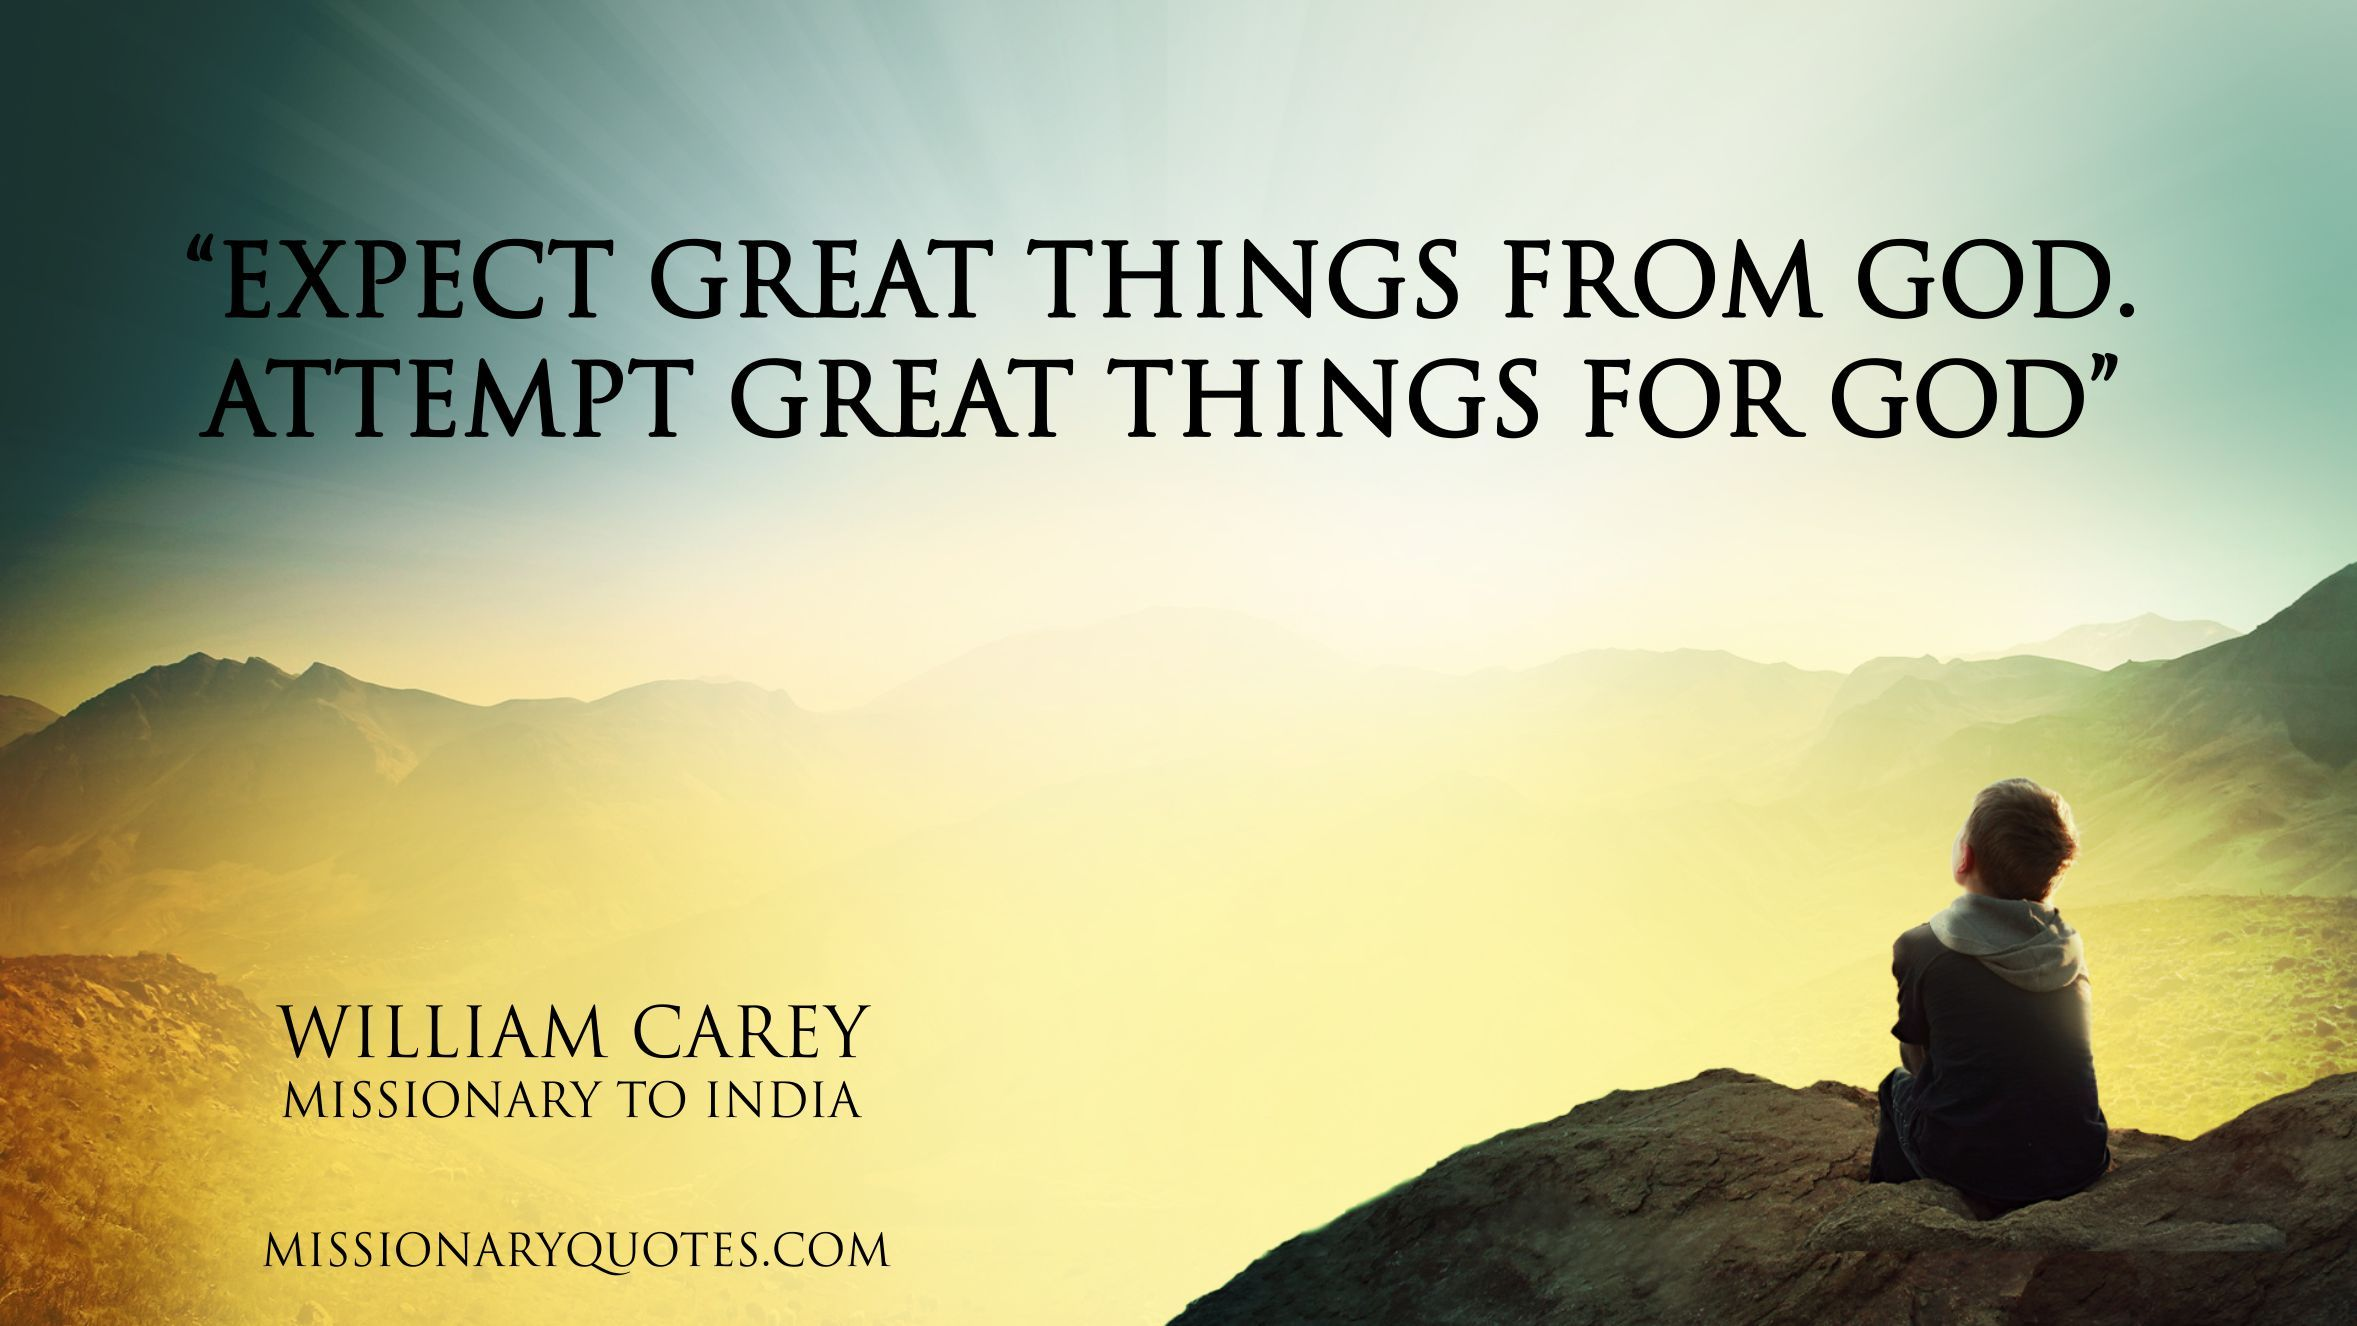 William Carey expect great things from GOD